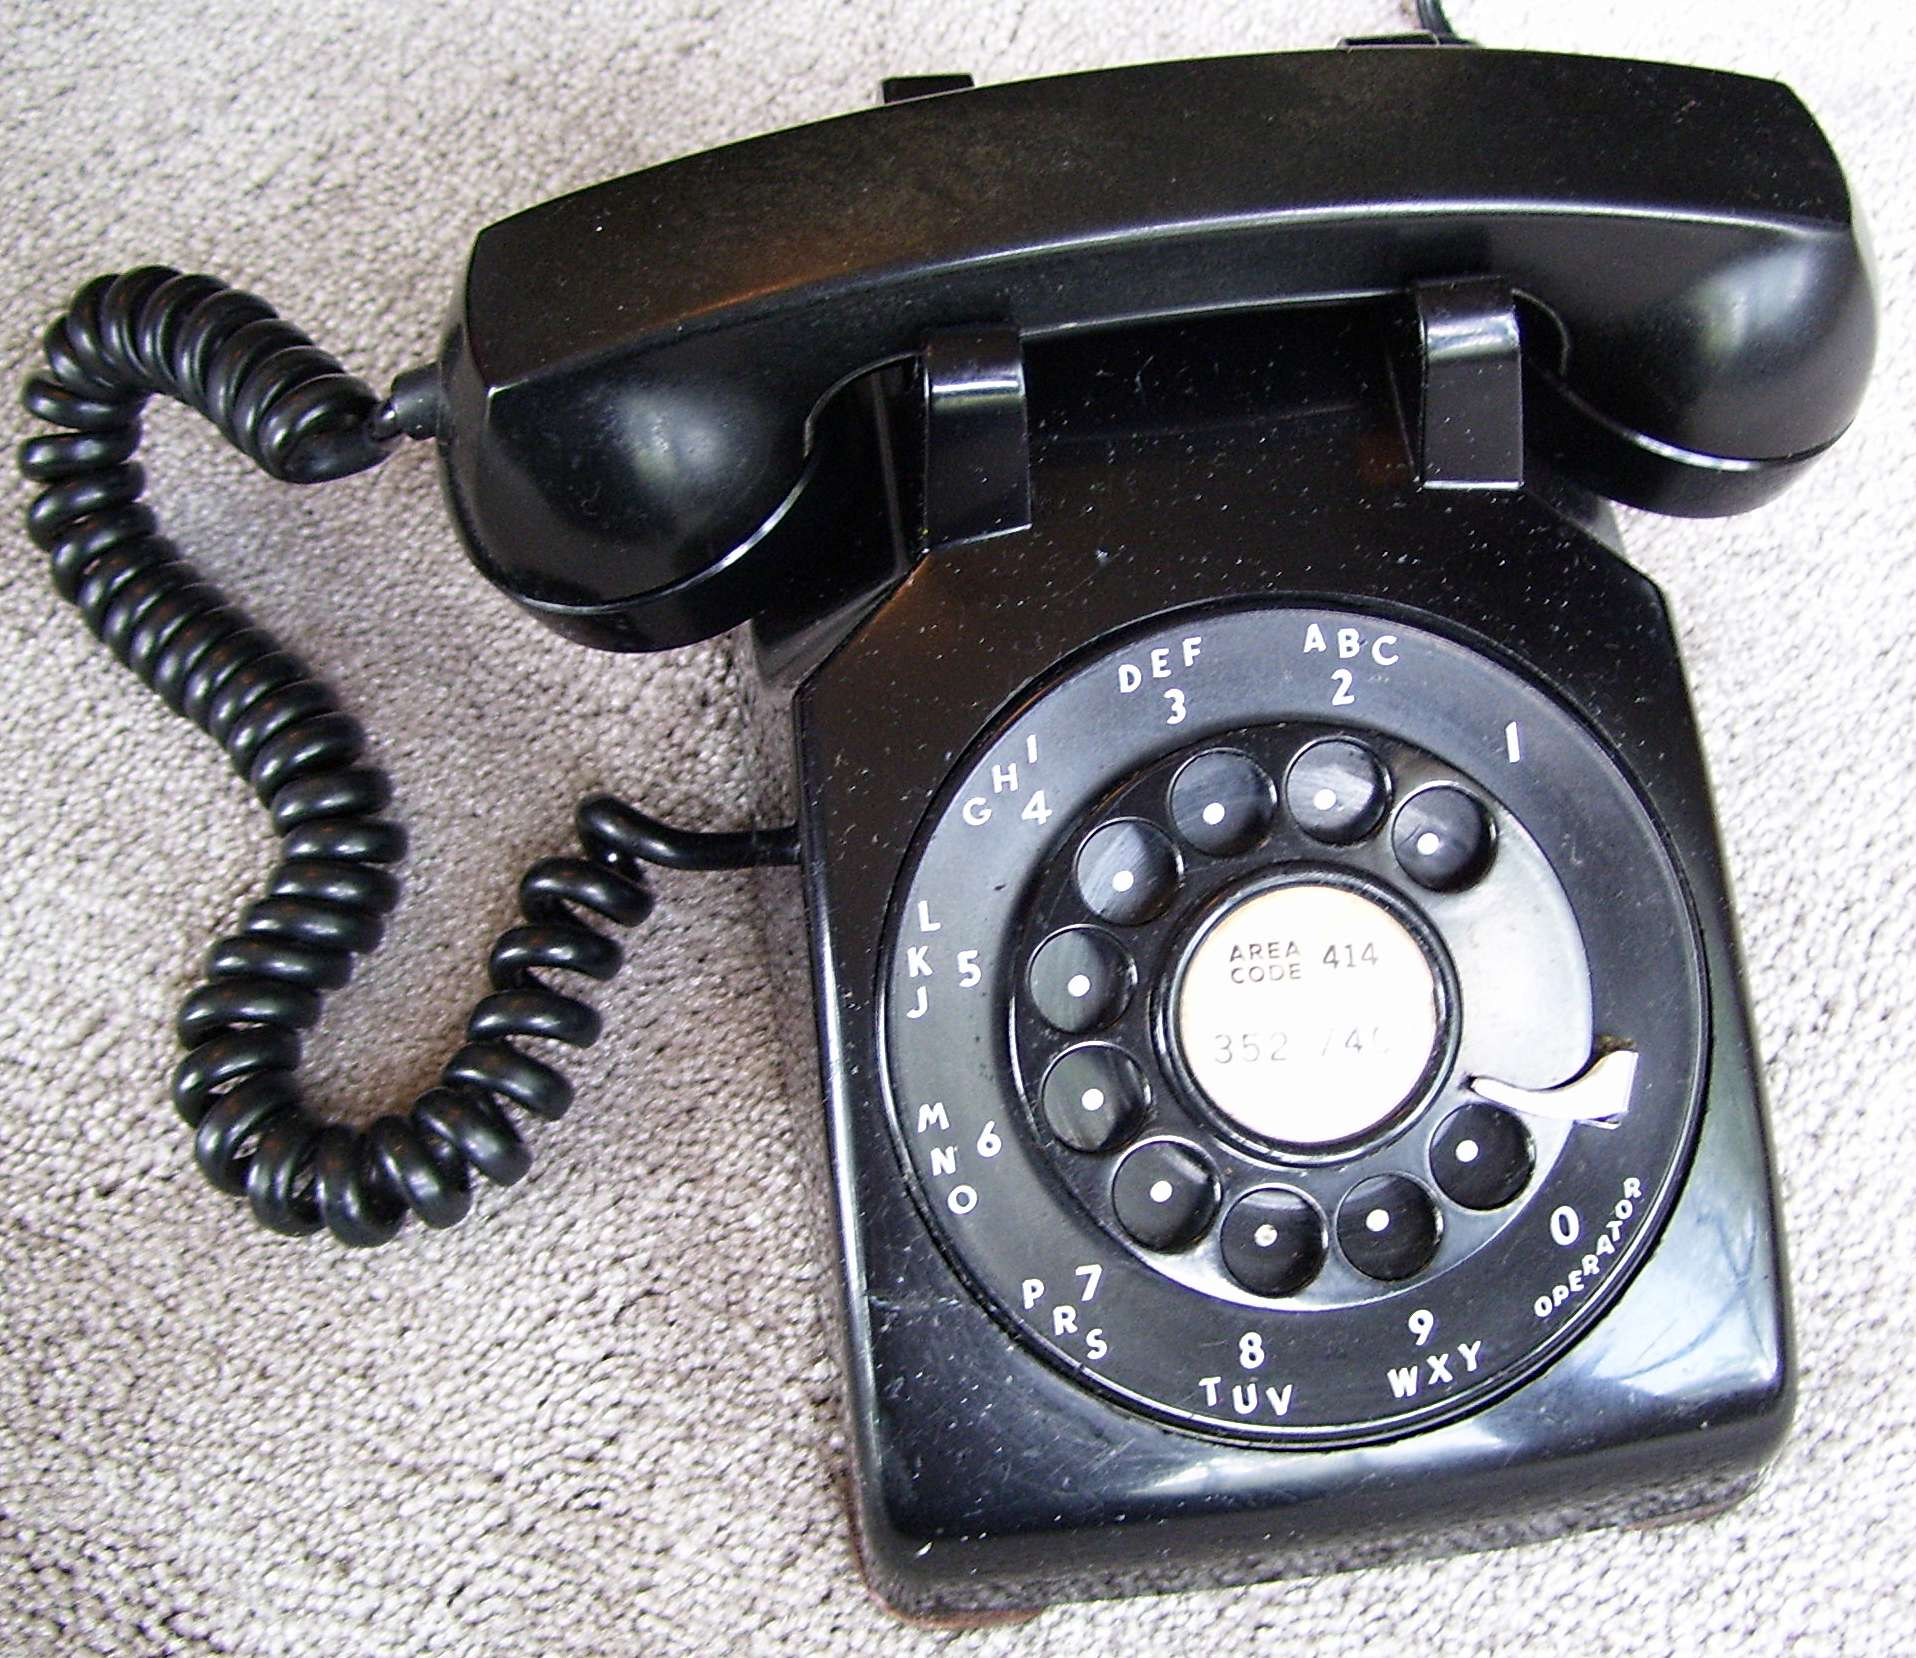 Model 500 telephone - Wikipedia